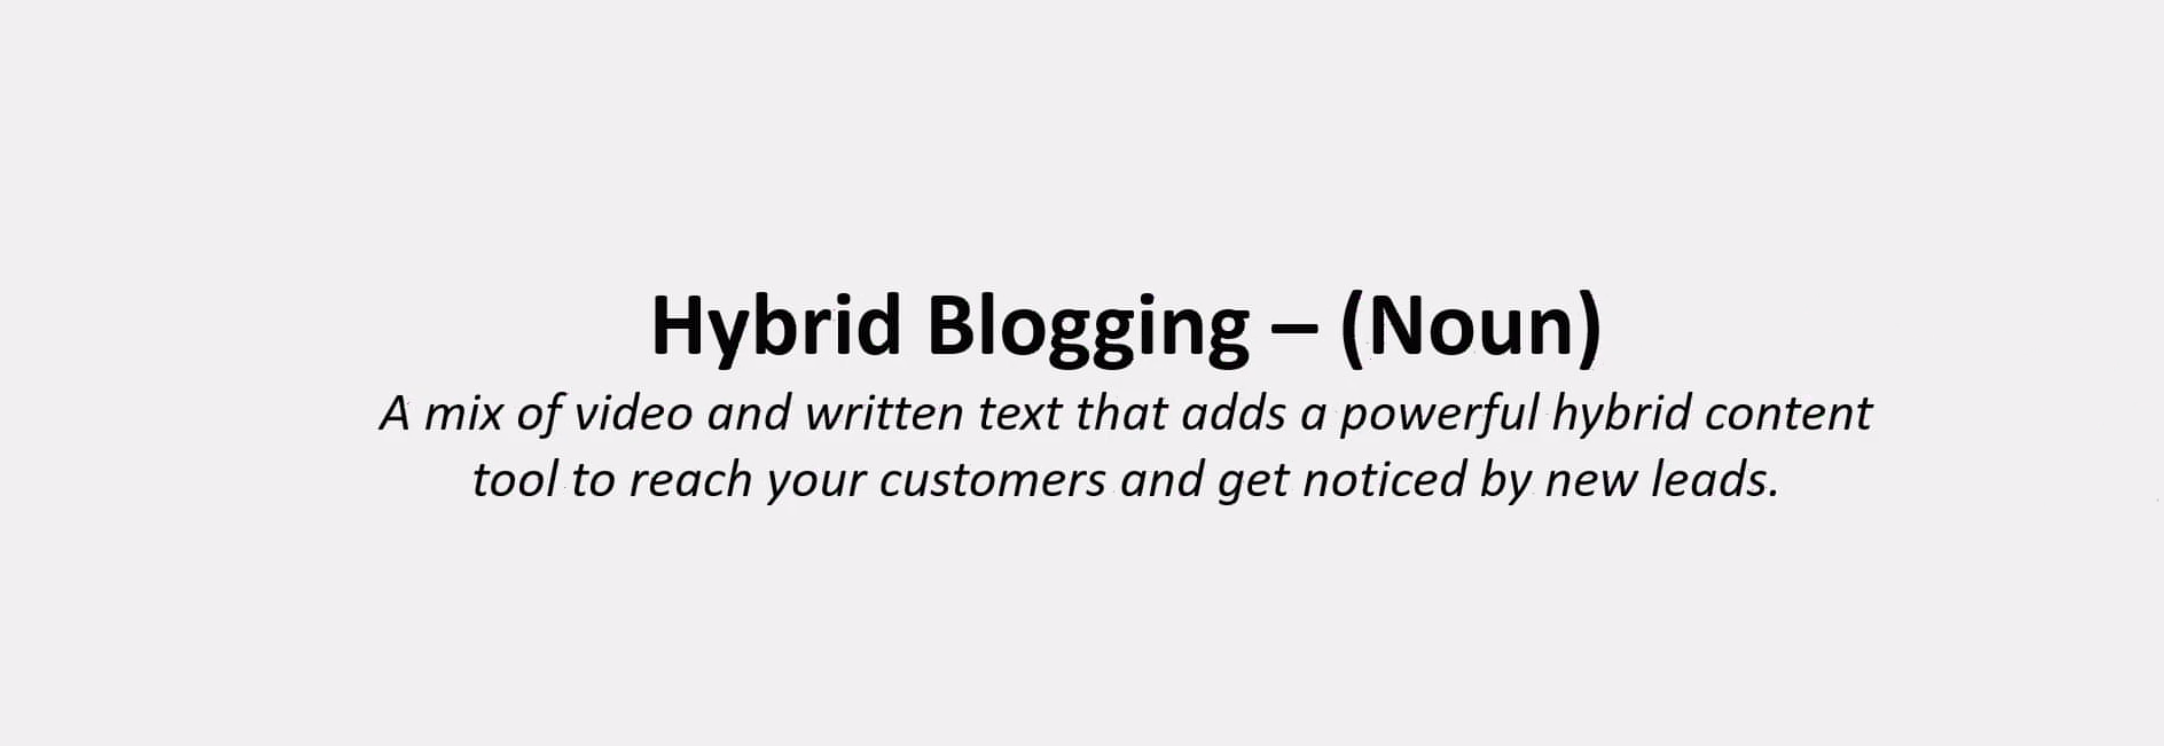 Definition of a hybrid blog | Virteom